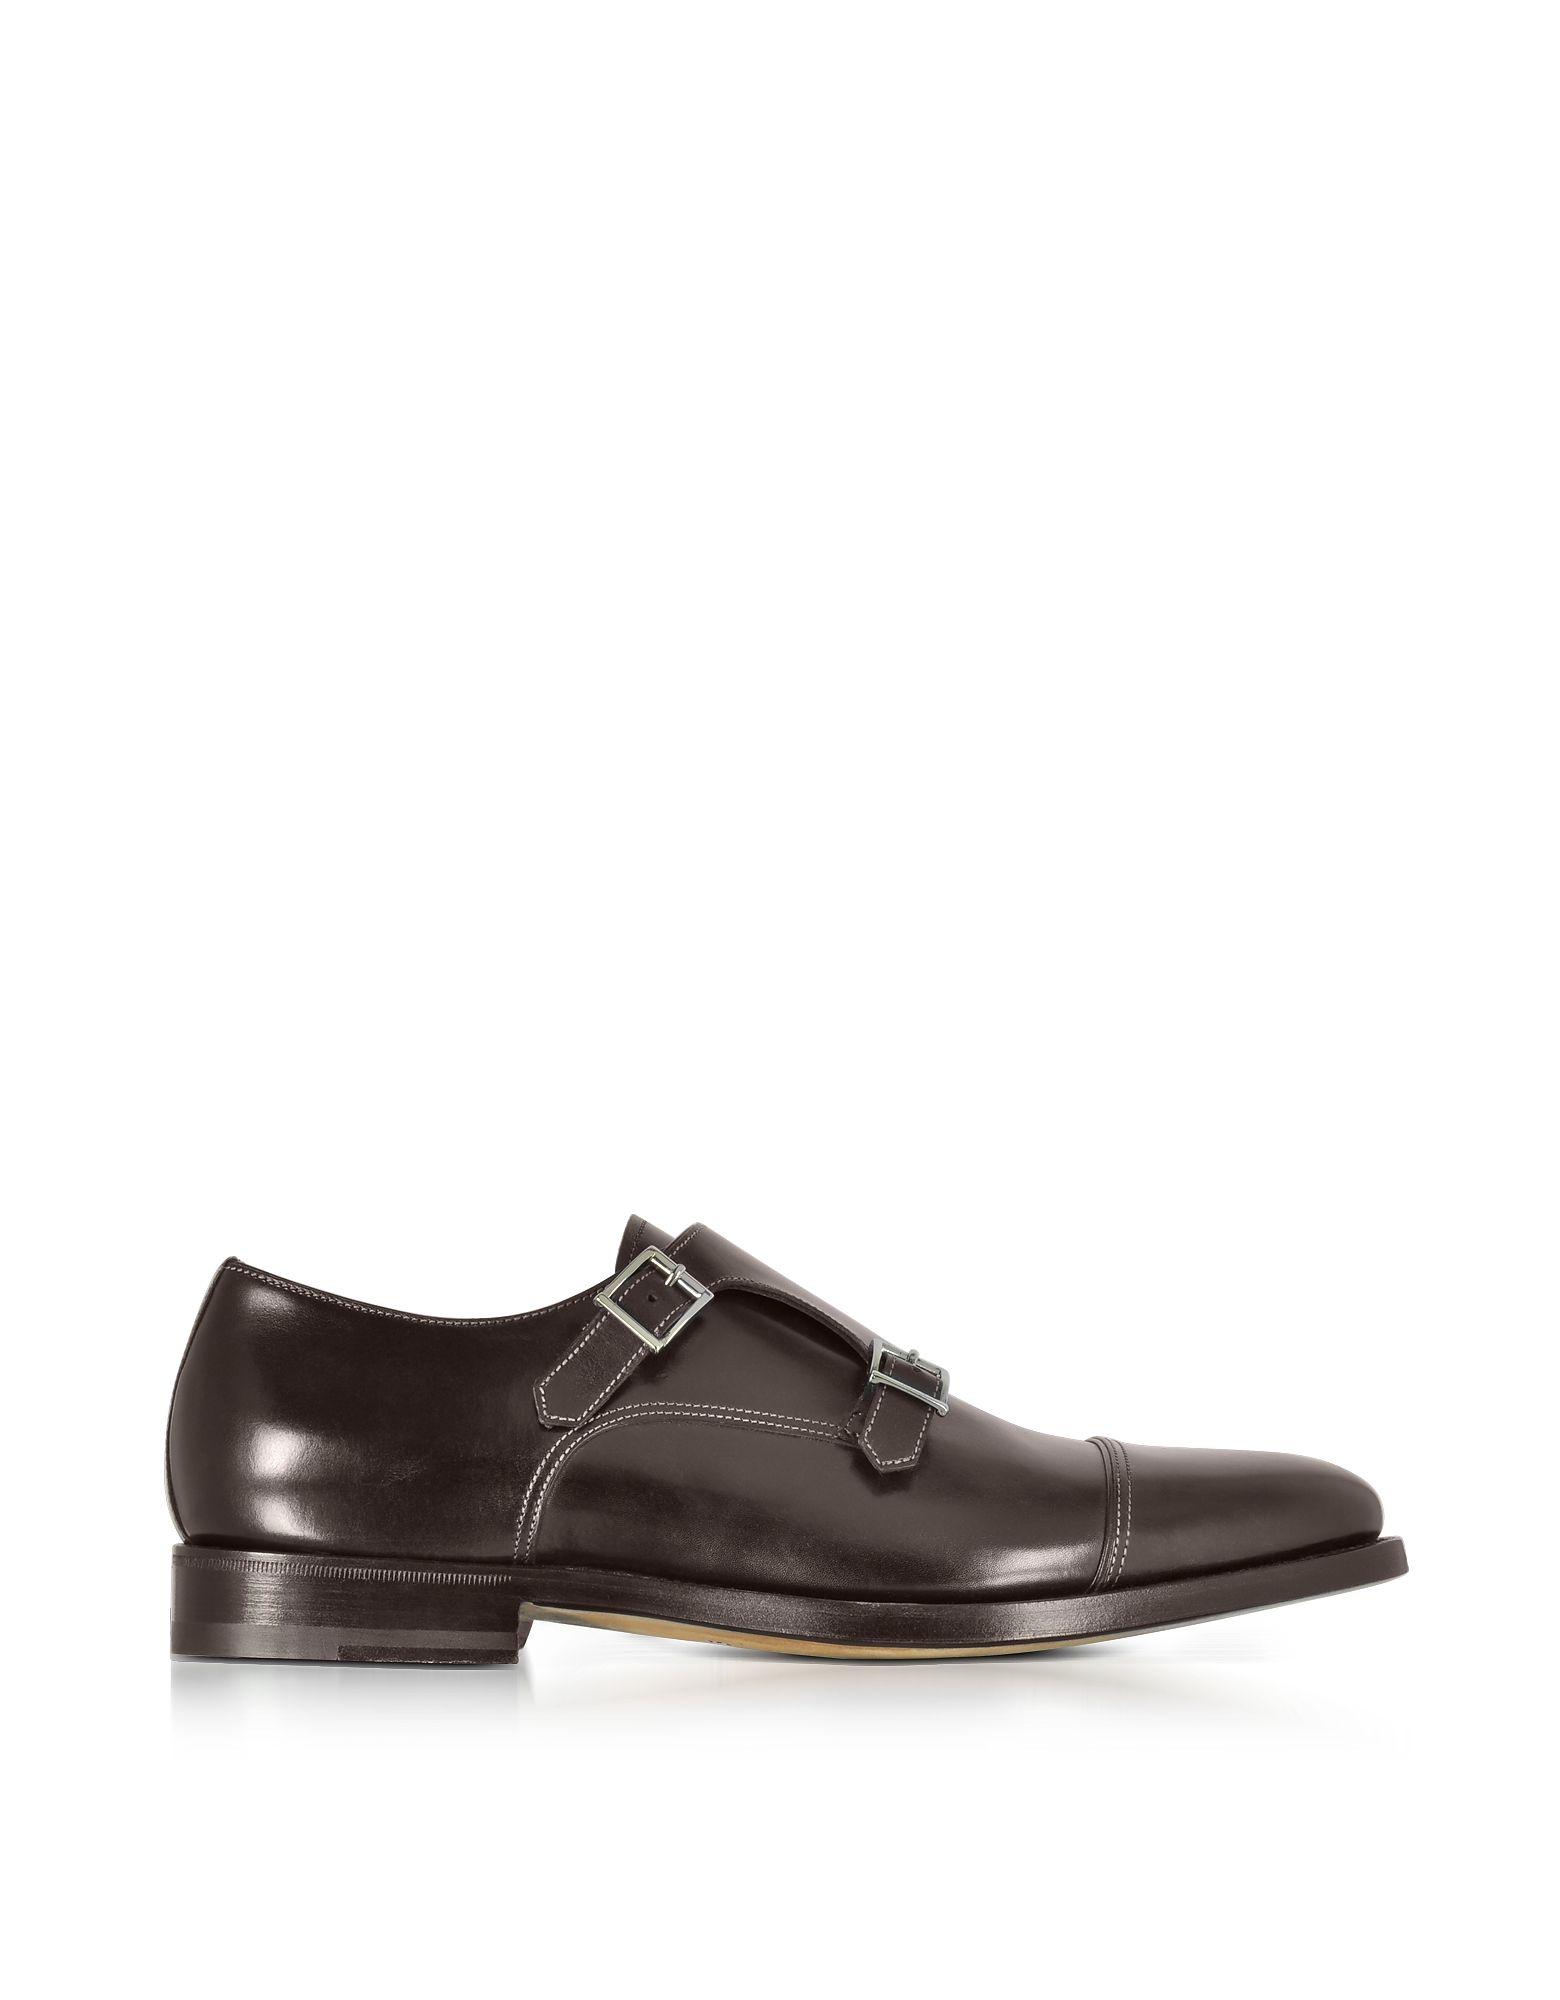 Santoni Shoes, Wilson Dark Brown Leather Monk Strap Shoes